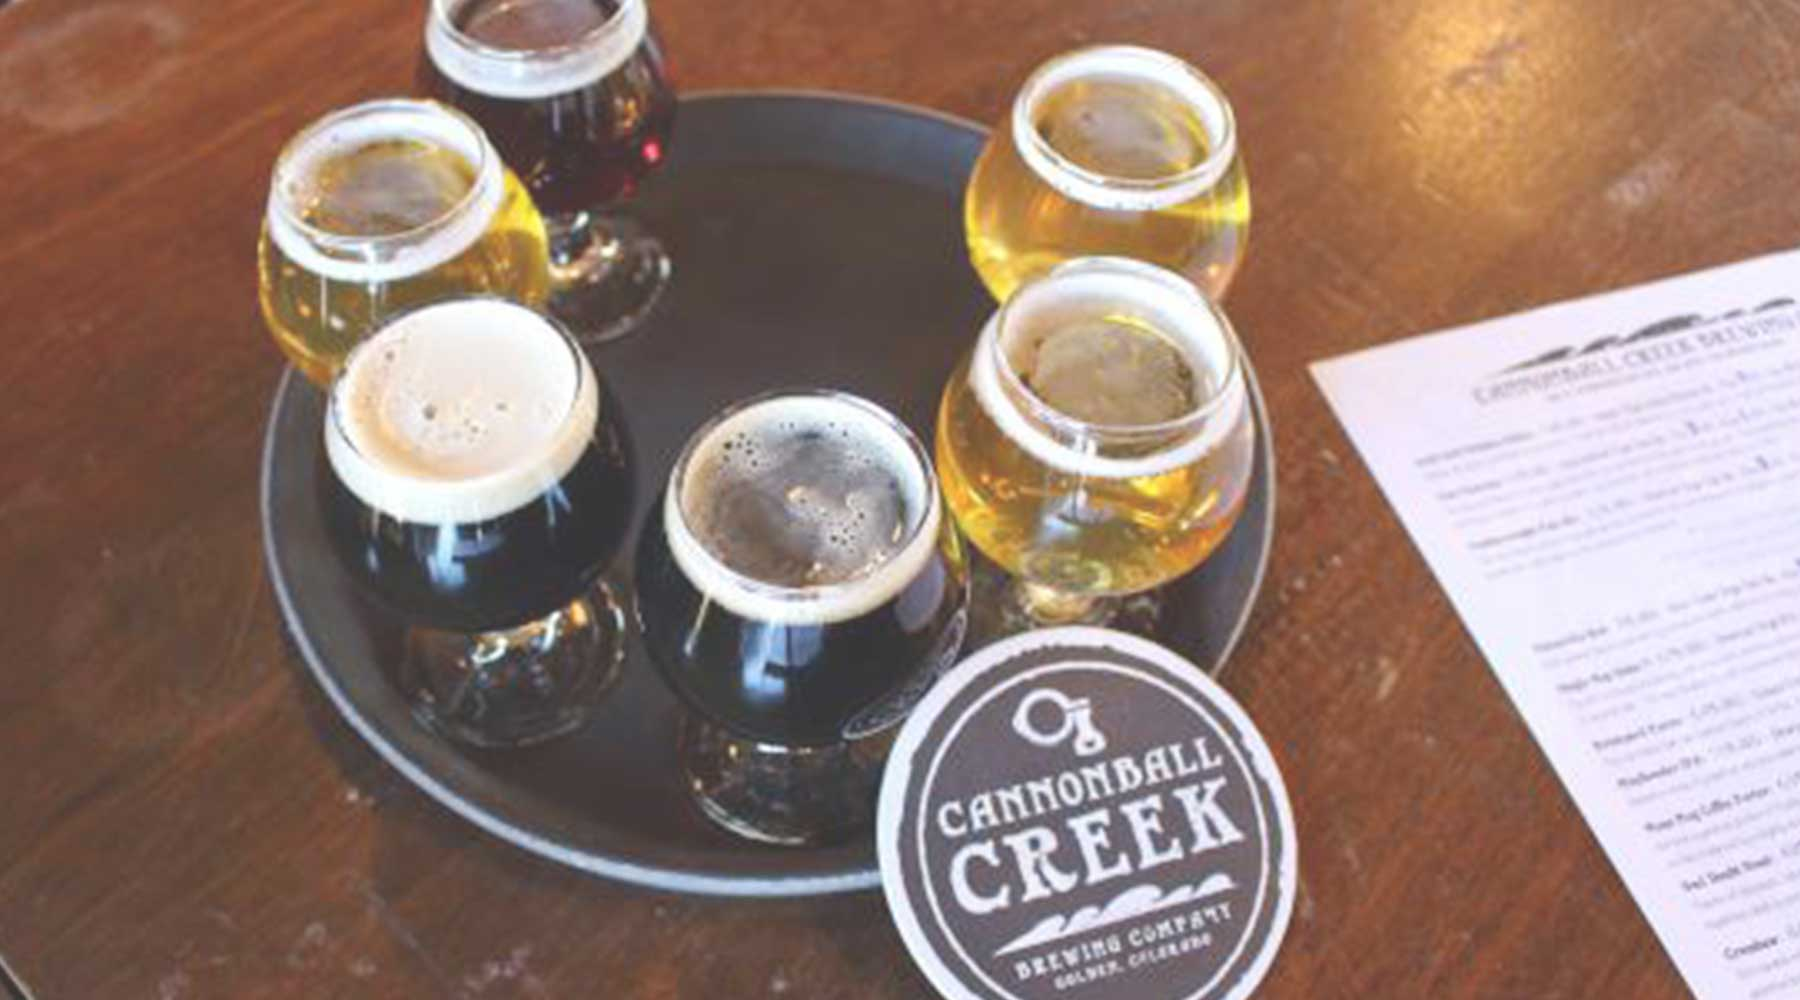 Cannonball Creek Brewing Company | Just Wine